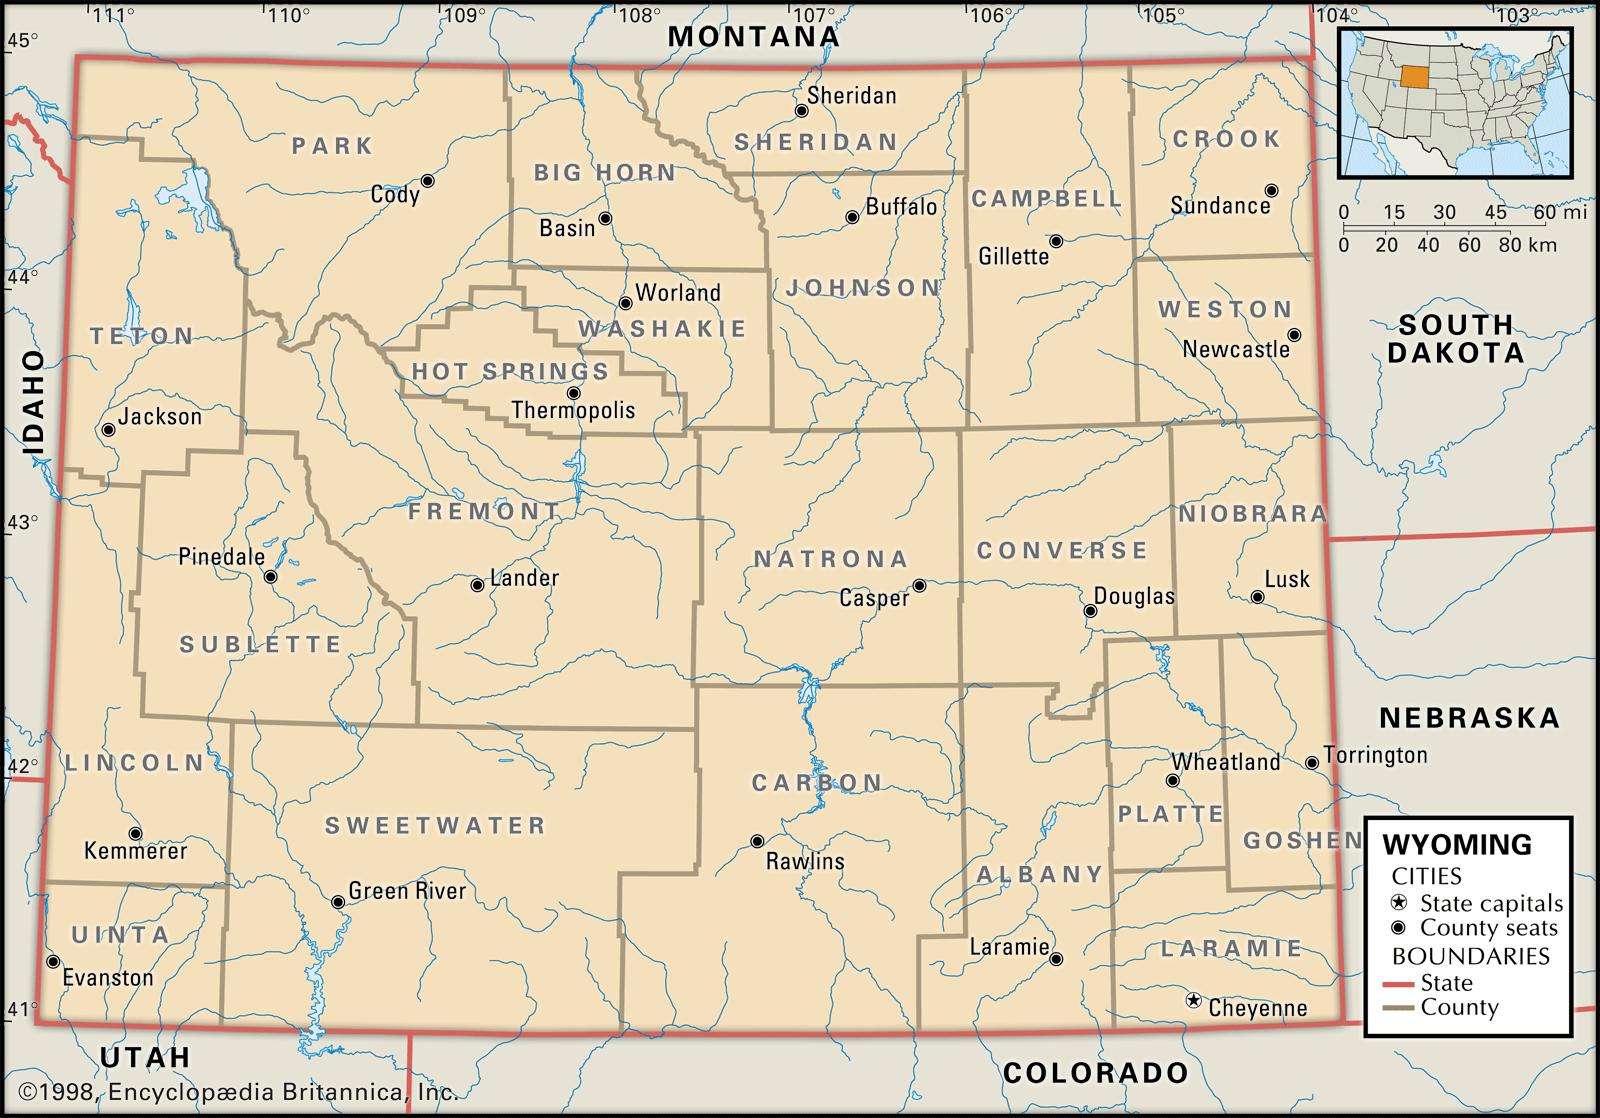 Powell wyoming additionally Wyoming besides Hole In The Wall further Wyoming Usa Natural Historical Treasure also Custer5. on big horn county wyoming